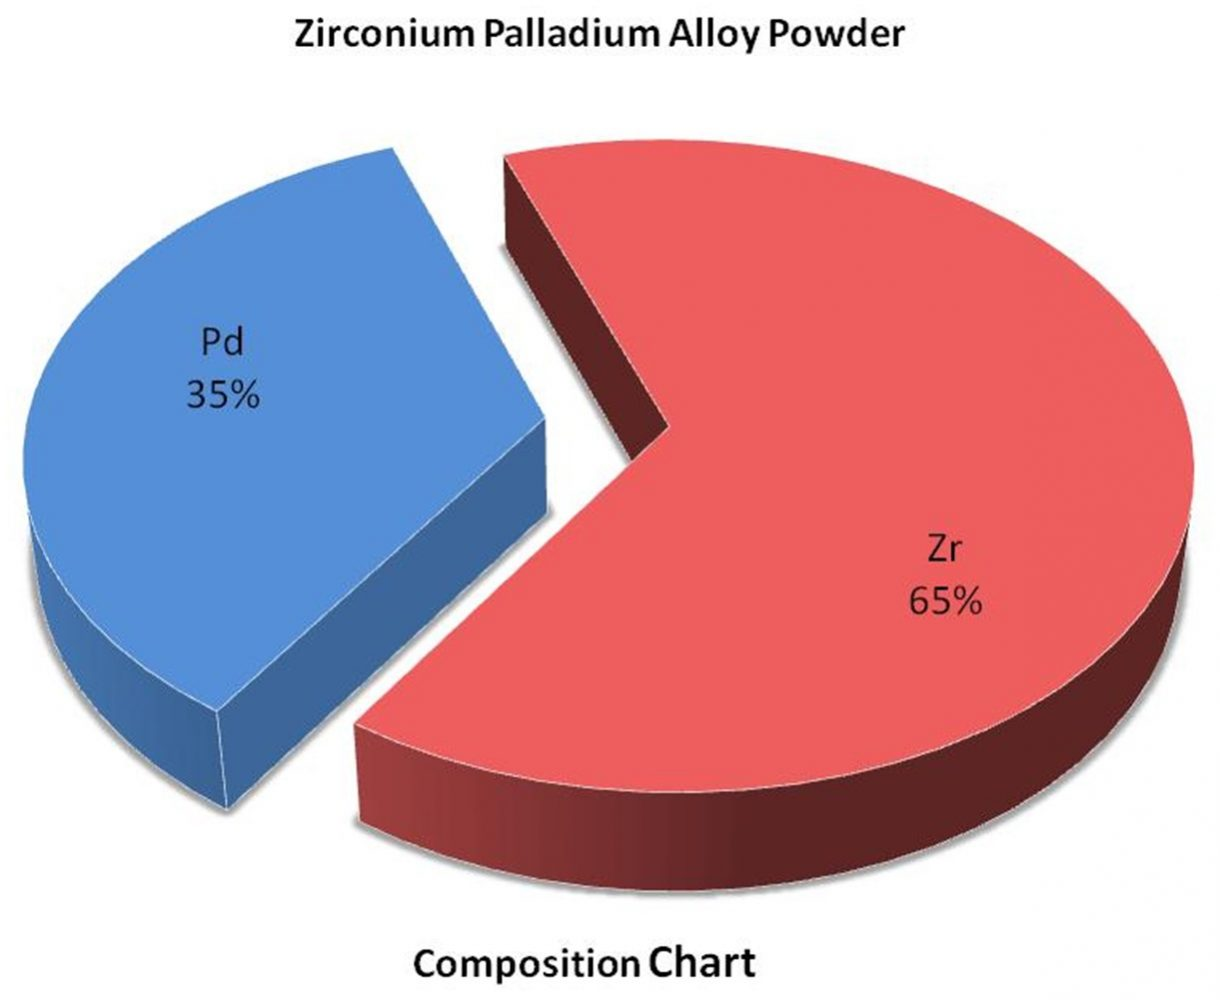 Zirconium Palladium Alloy Powder